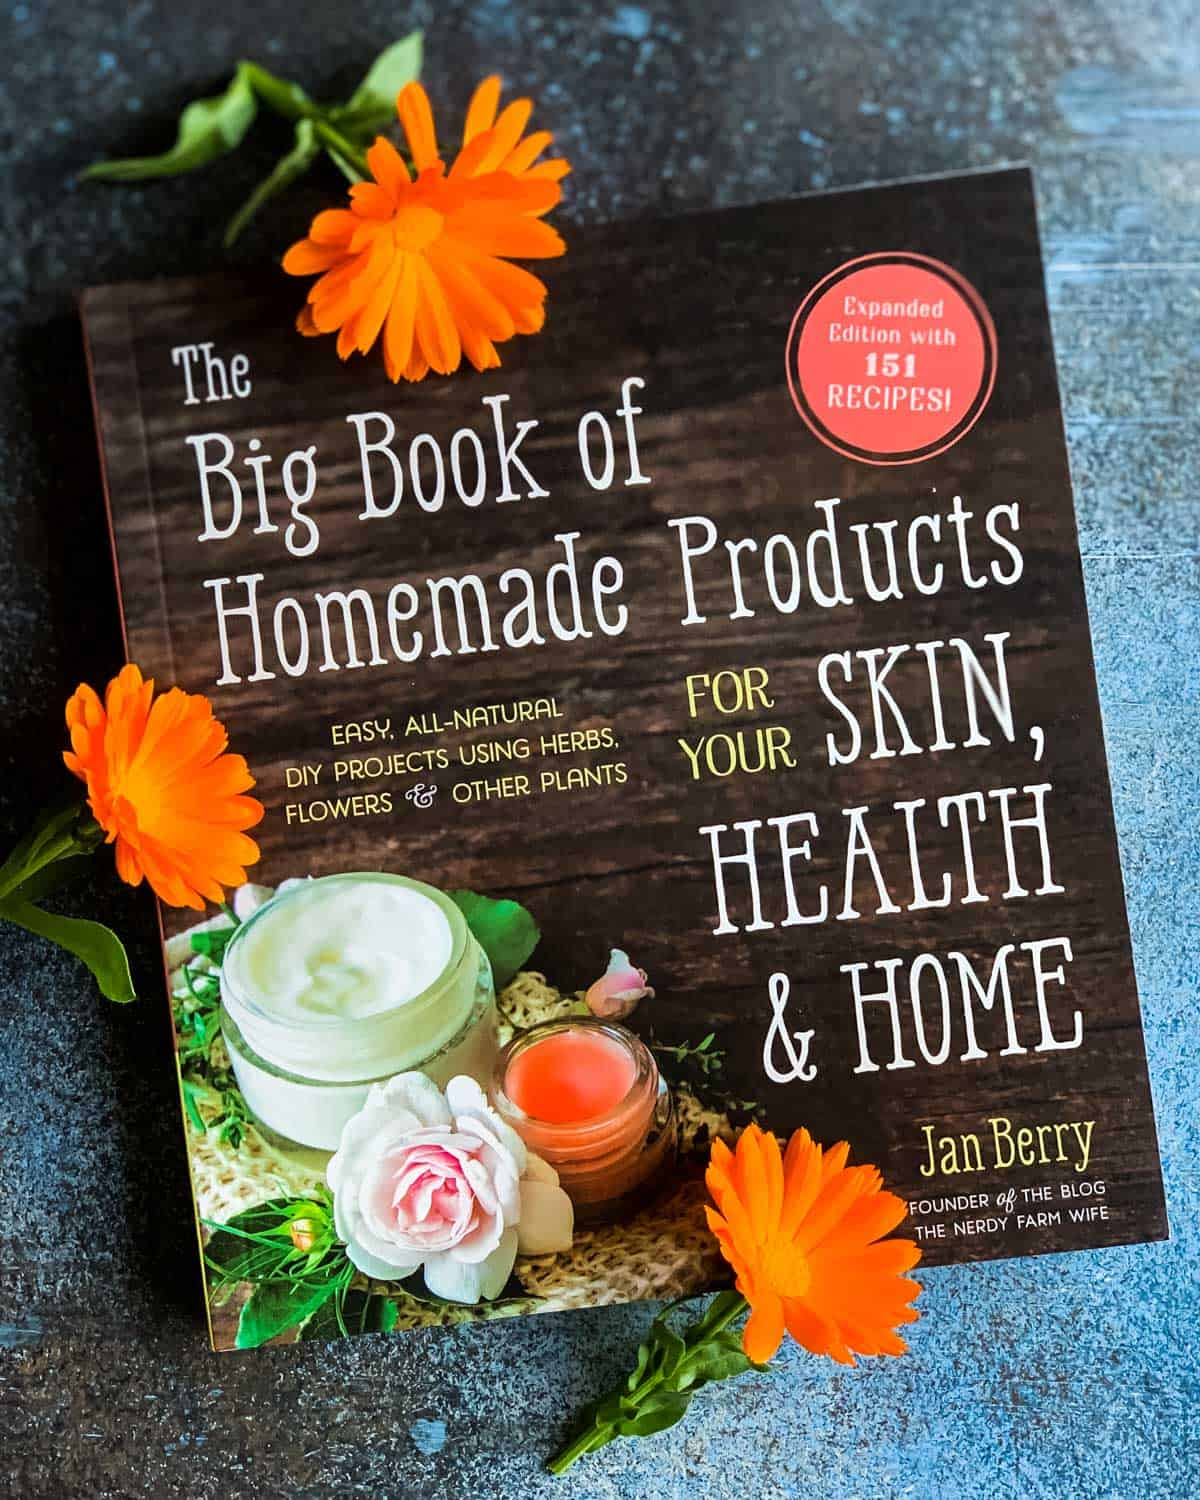 the big book of homemade products for you skin, health and home